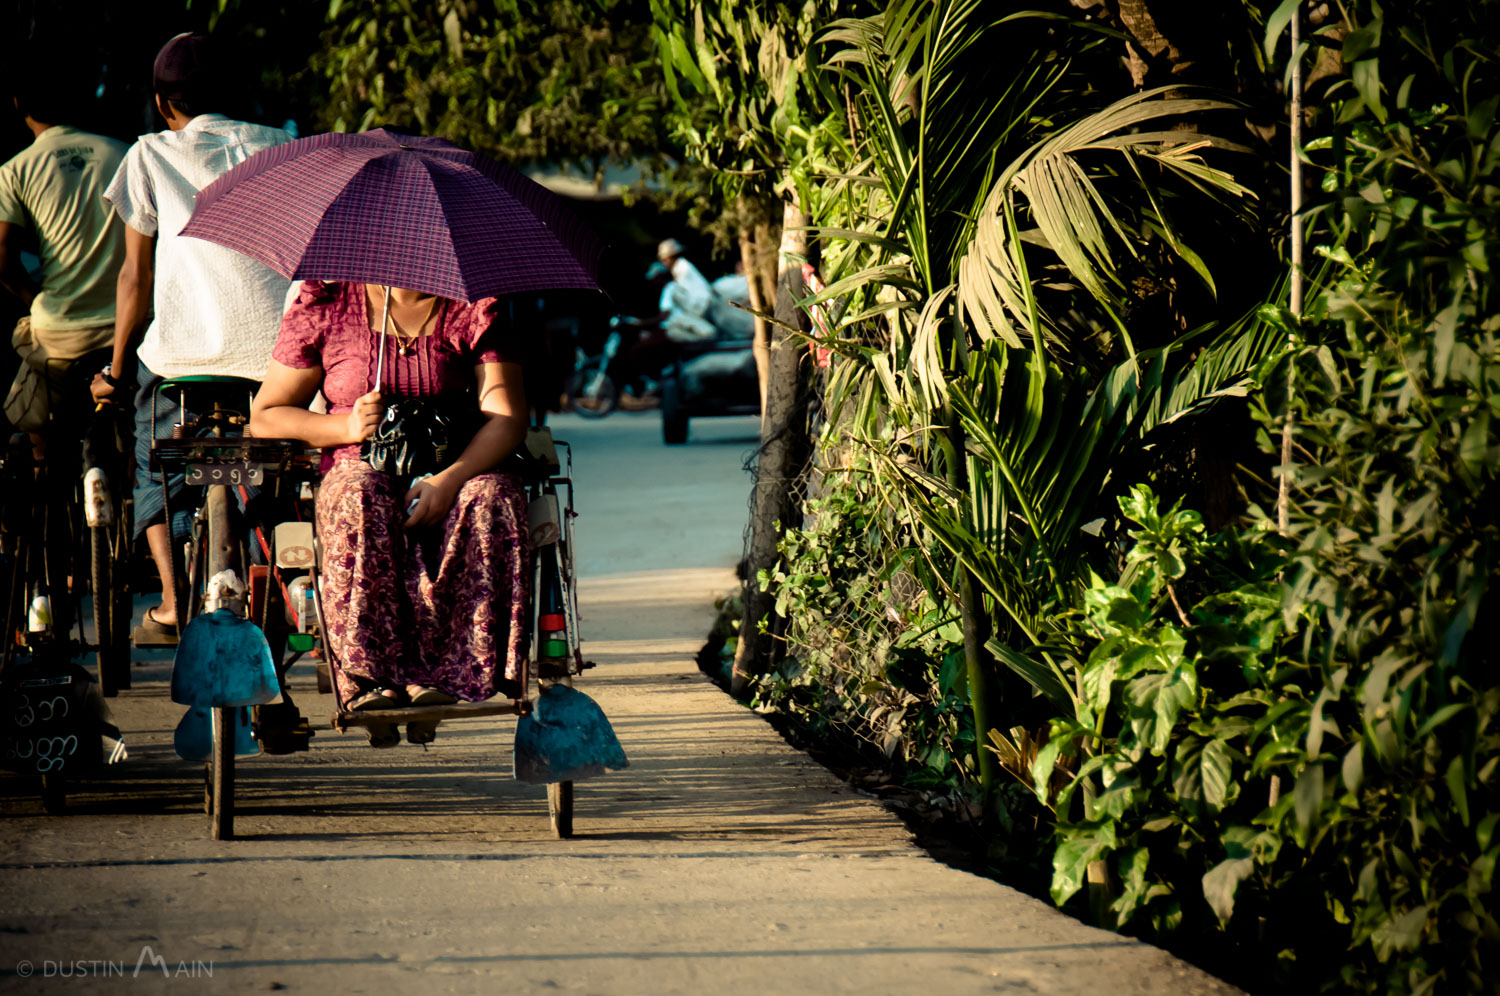 Yangon Life. Maybe you'll just have to hop on your own trishaw to see what the fuss is all about.